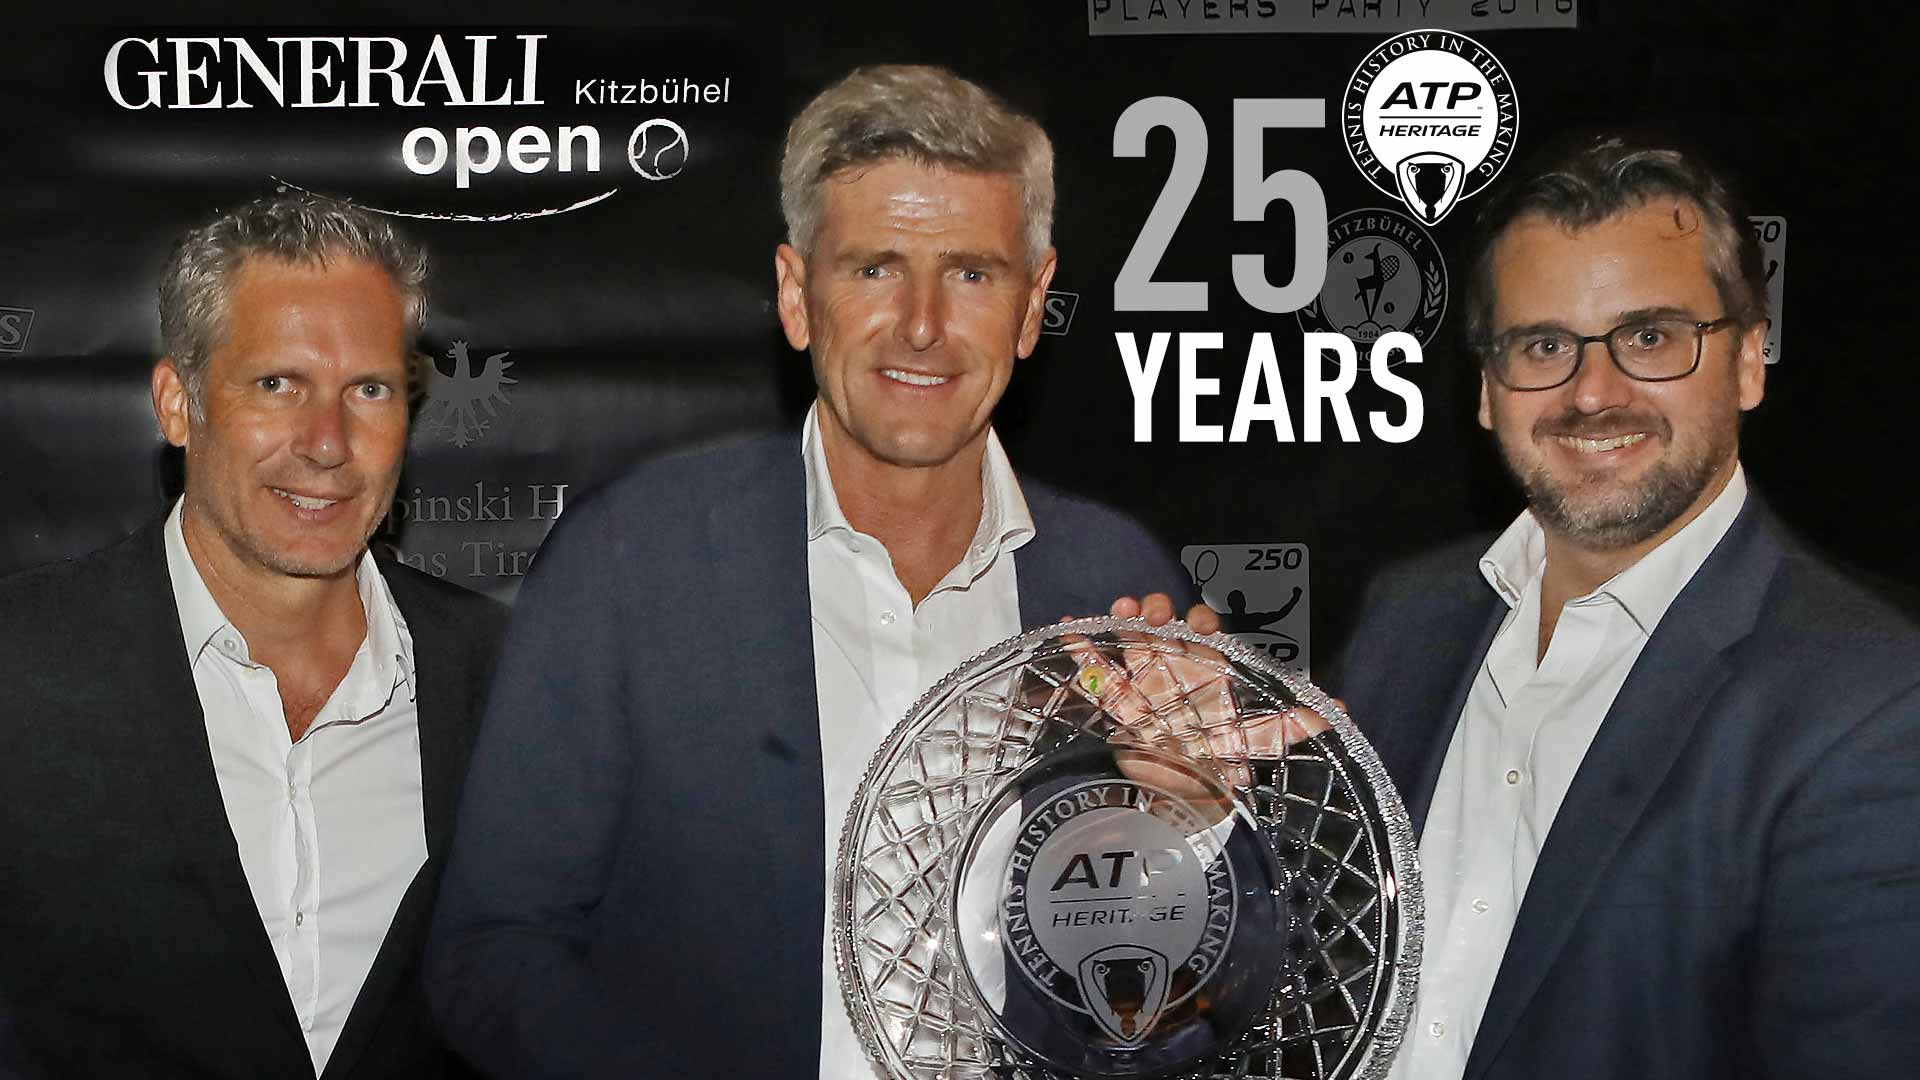 Massey, premio ATP World Tour Heritage